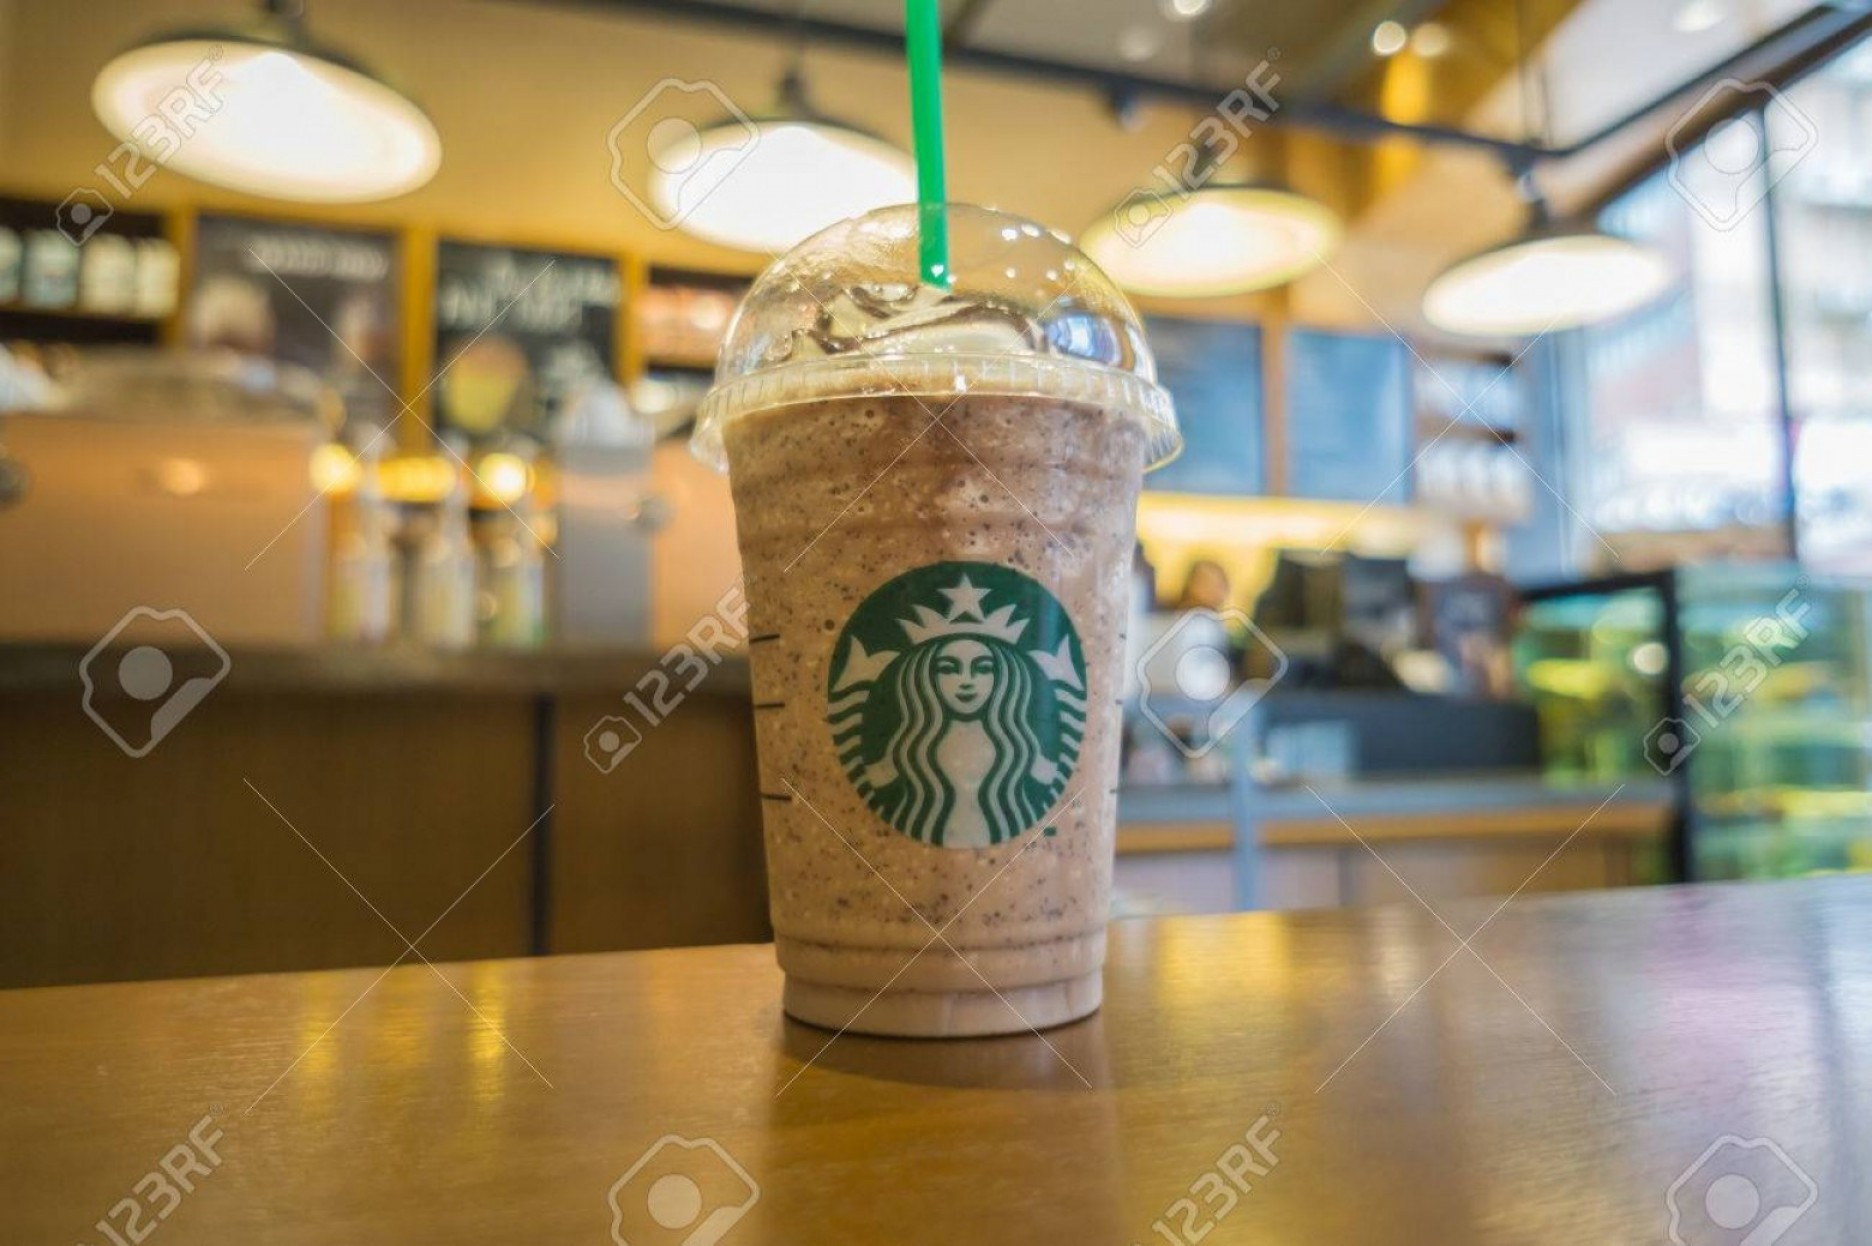 Starbucks China Vector: Photohongkong China October Glass Of Fresh Starbucks Coffee Frappuccino Blended Beverages Wood Table I